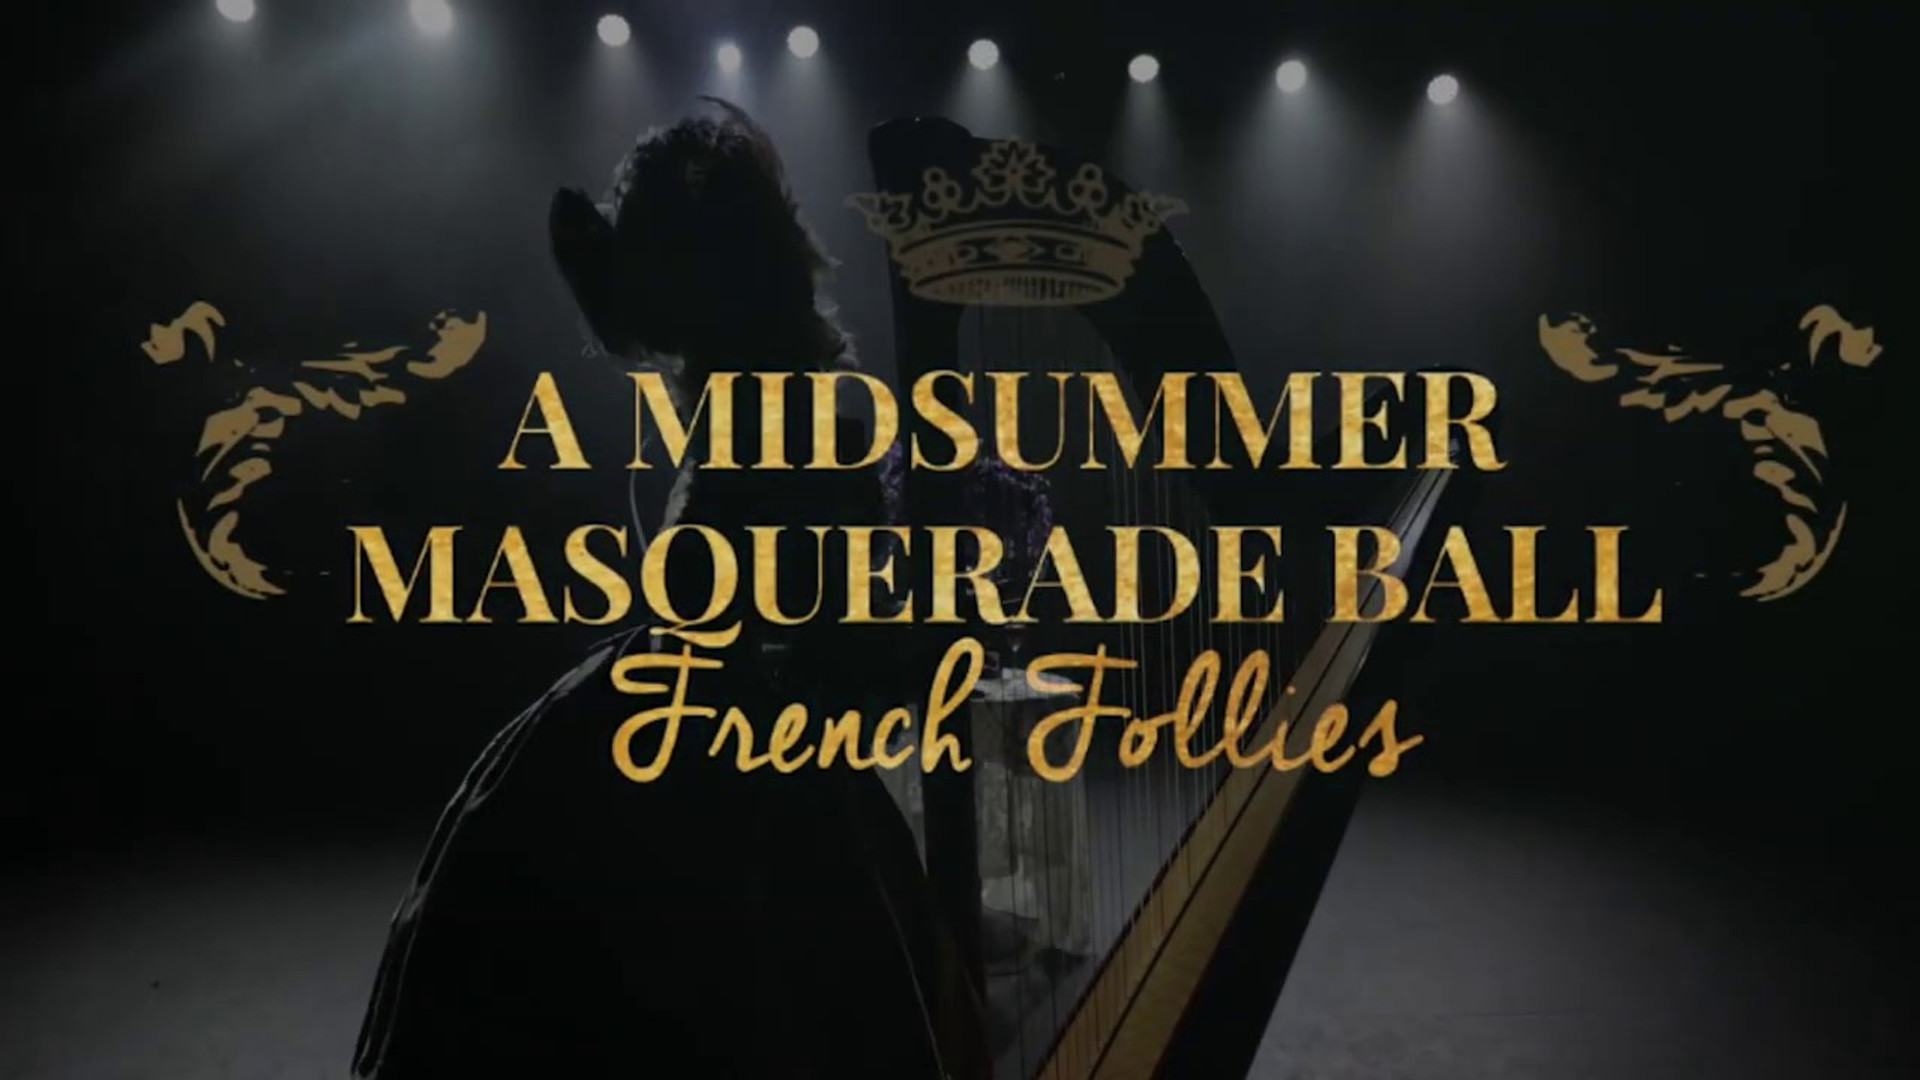 Midsummer Masquerade Ball: French Follies